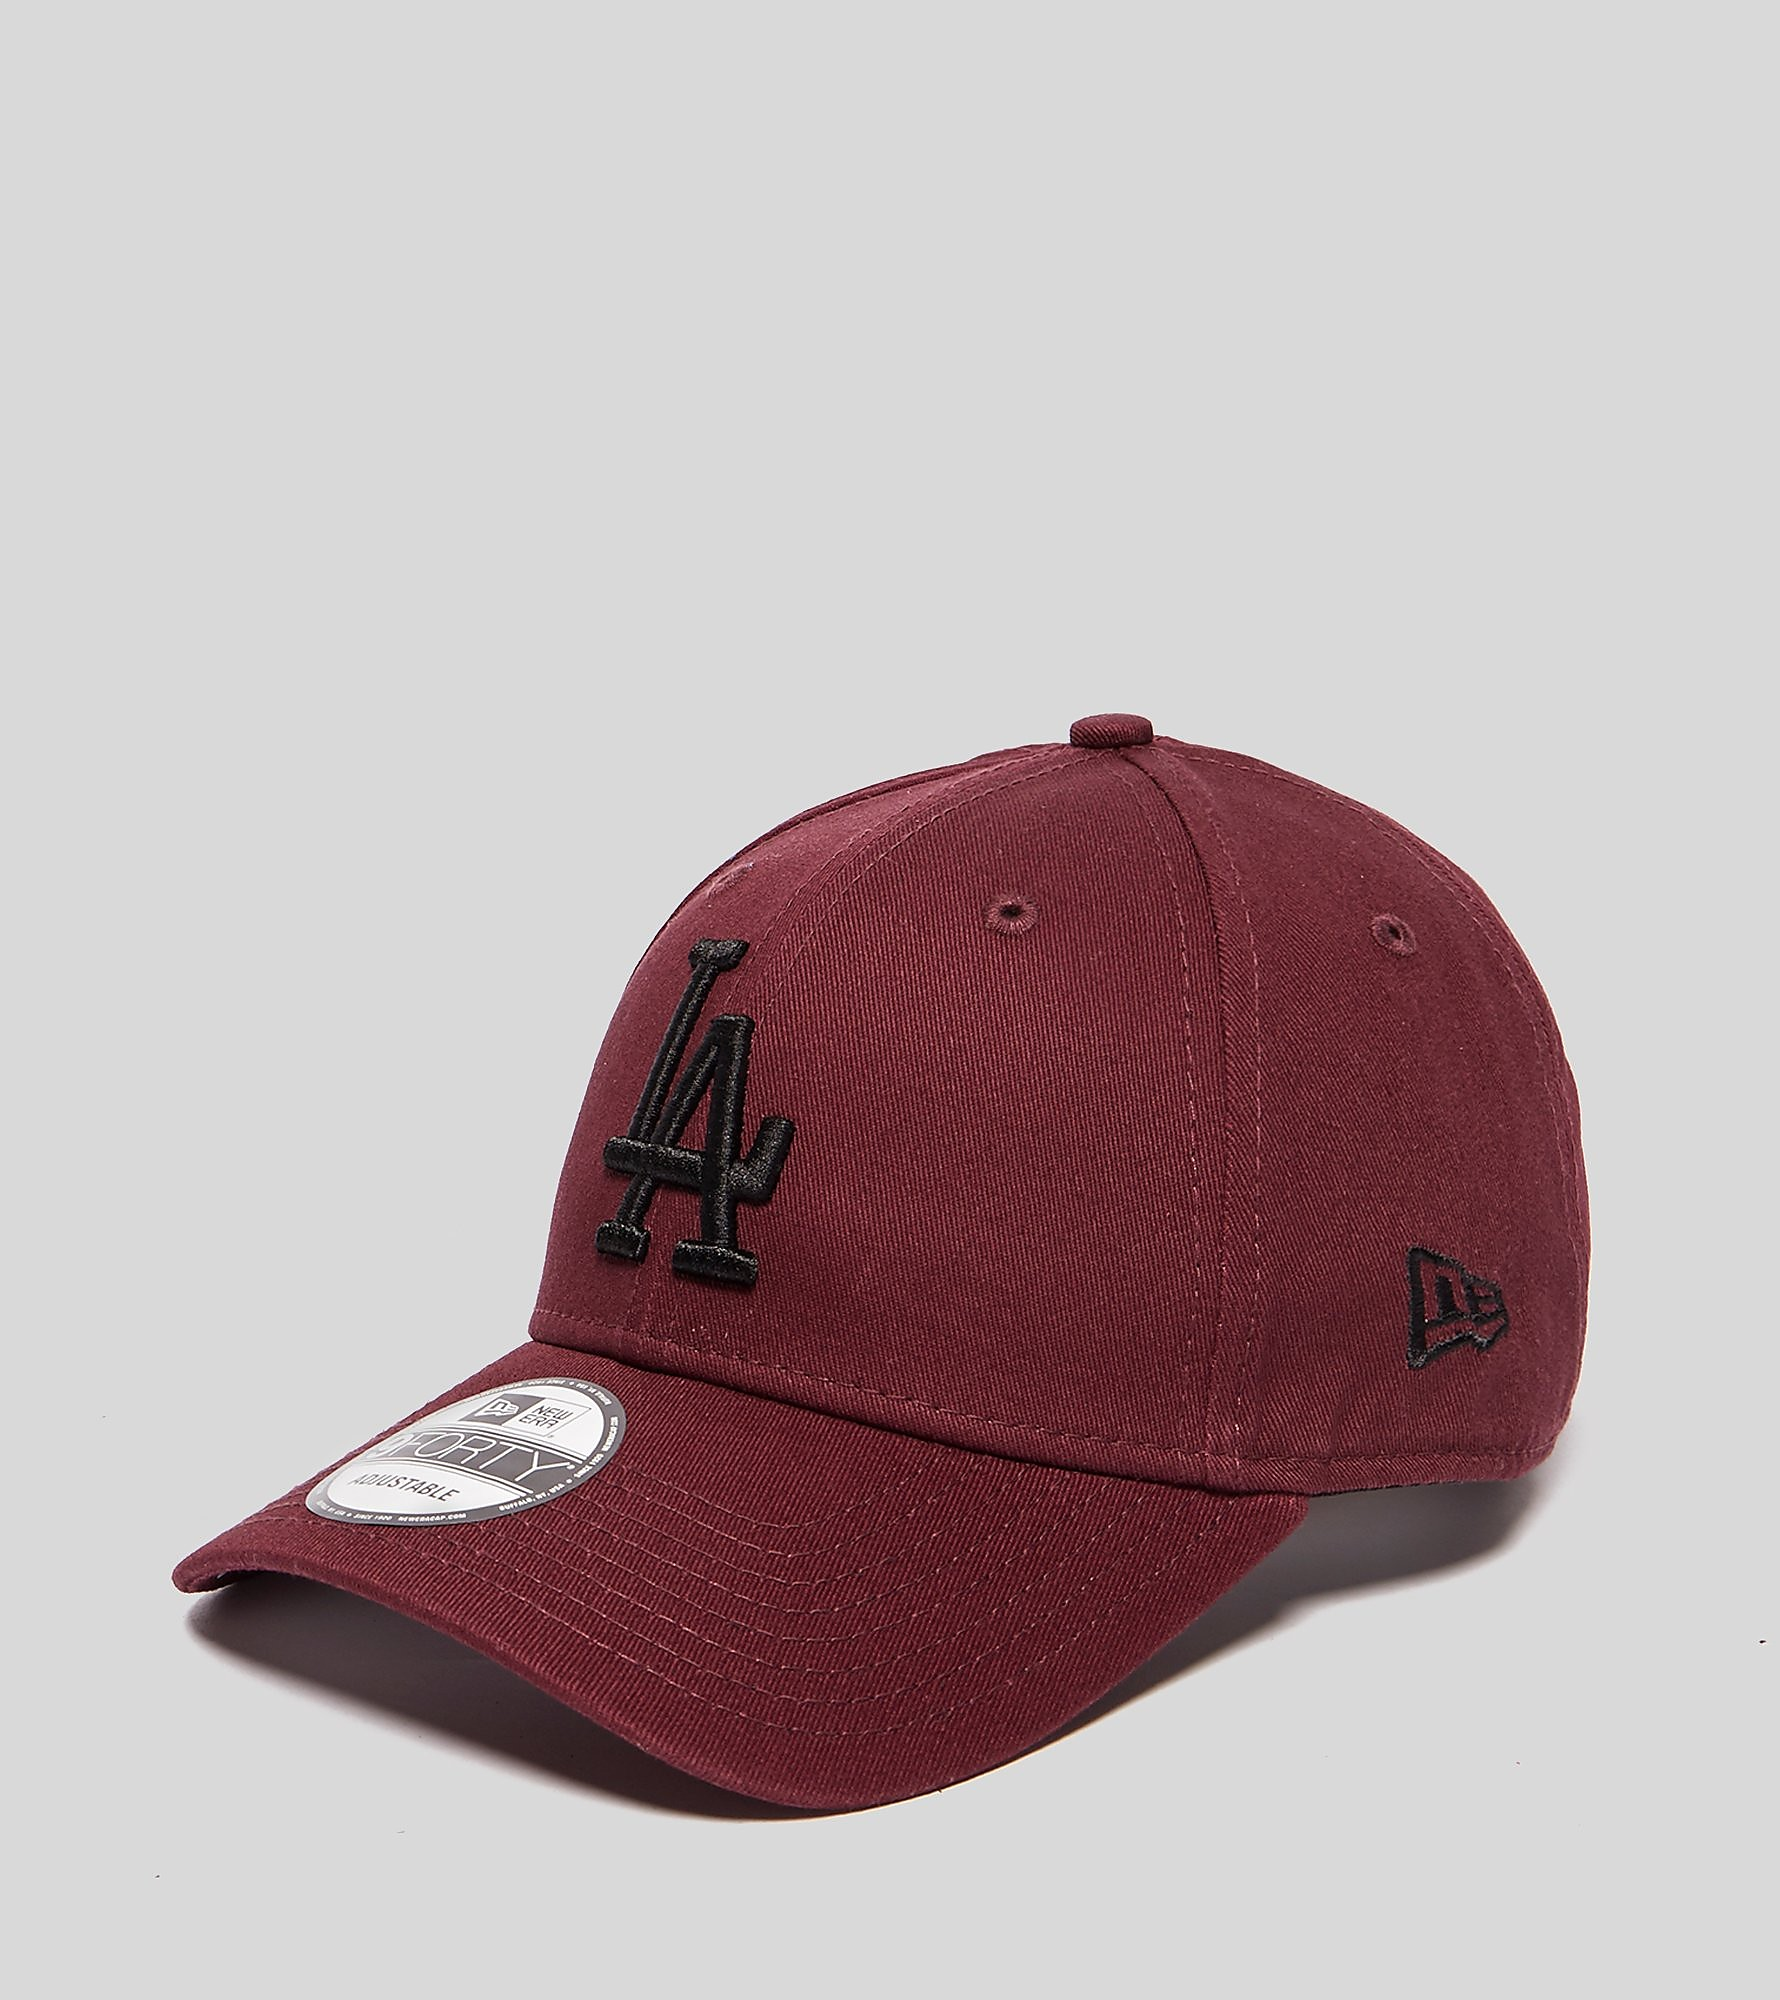 New Era MLB 9FORTY LA Cap